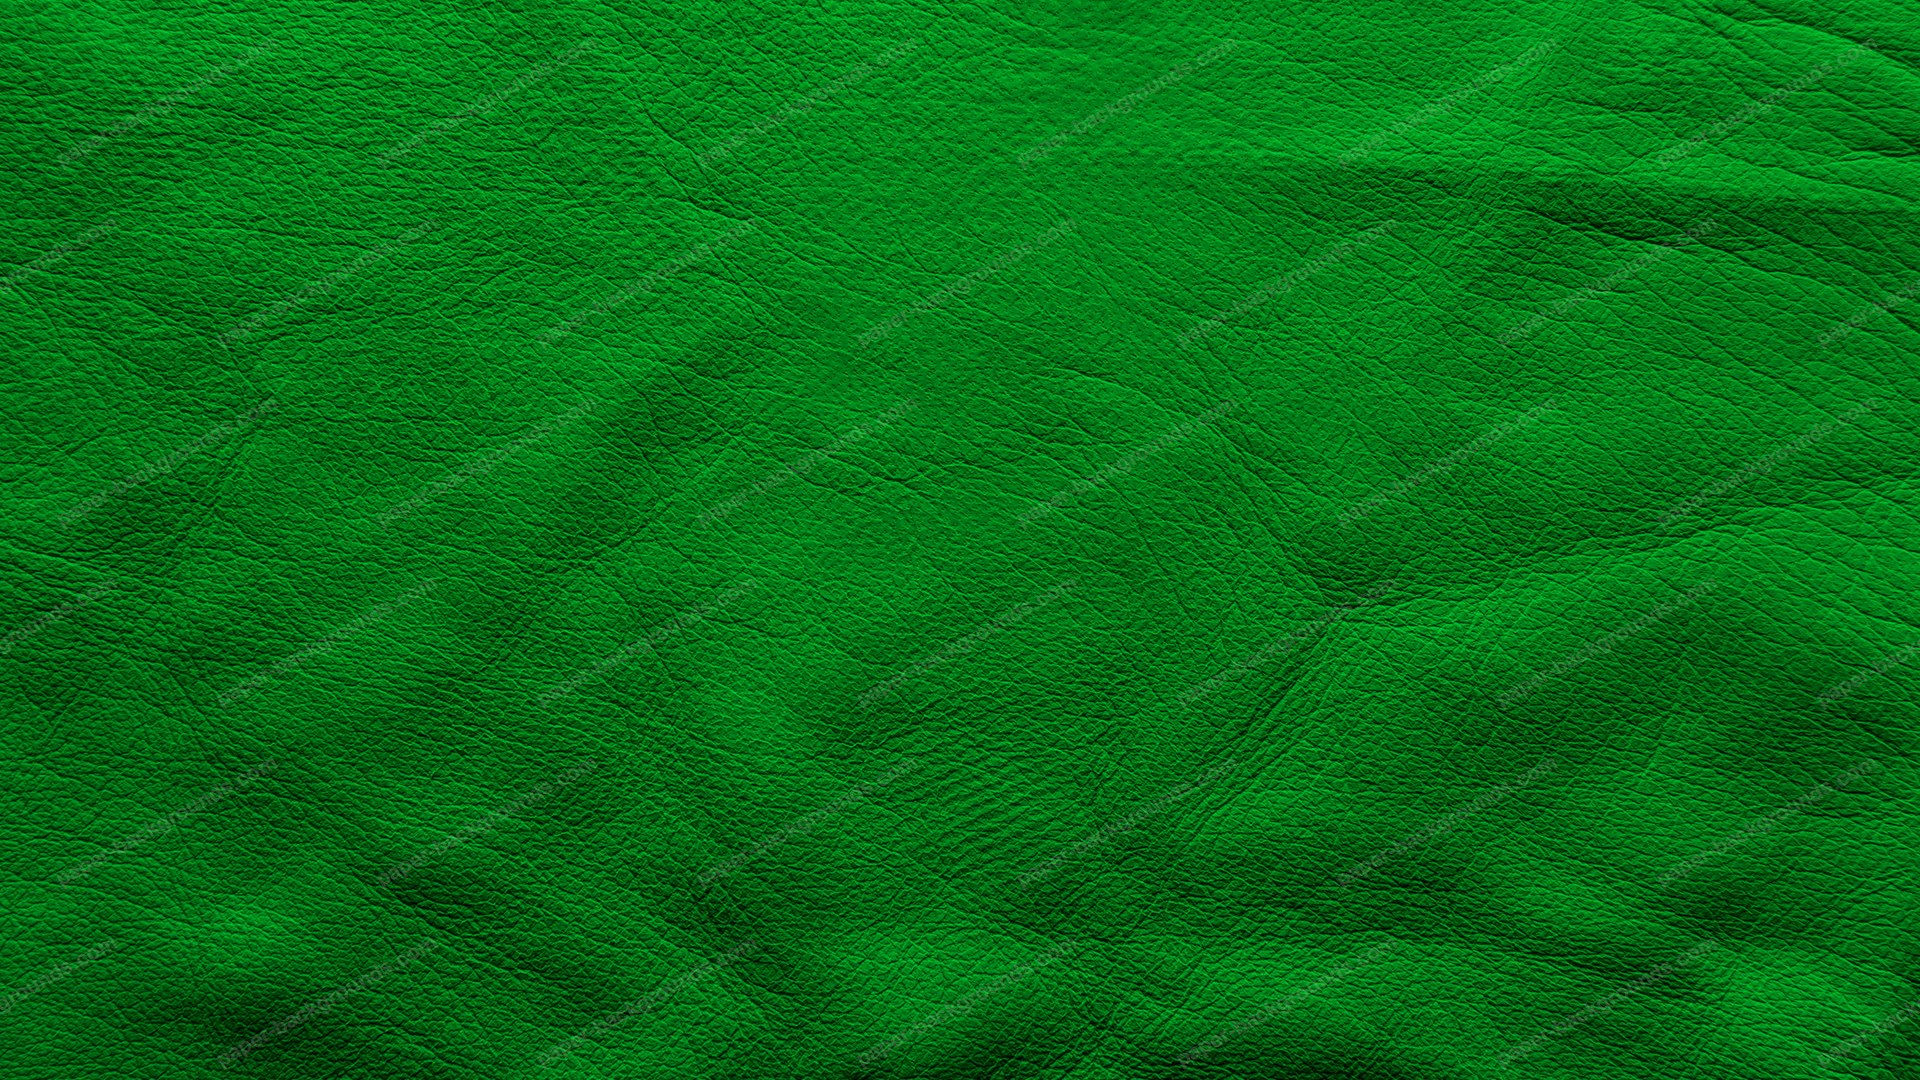 Really cool green and black backgrounds